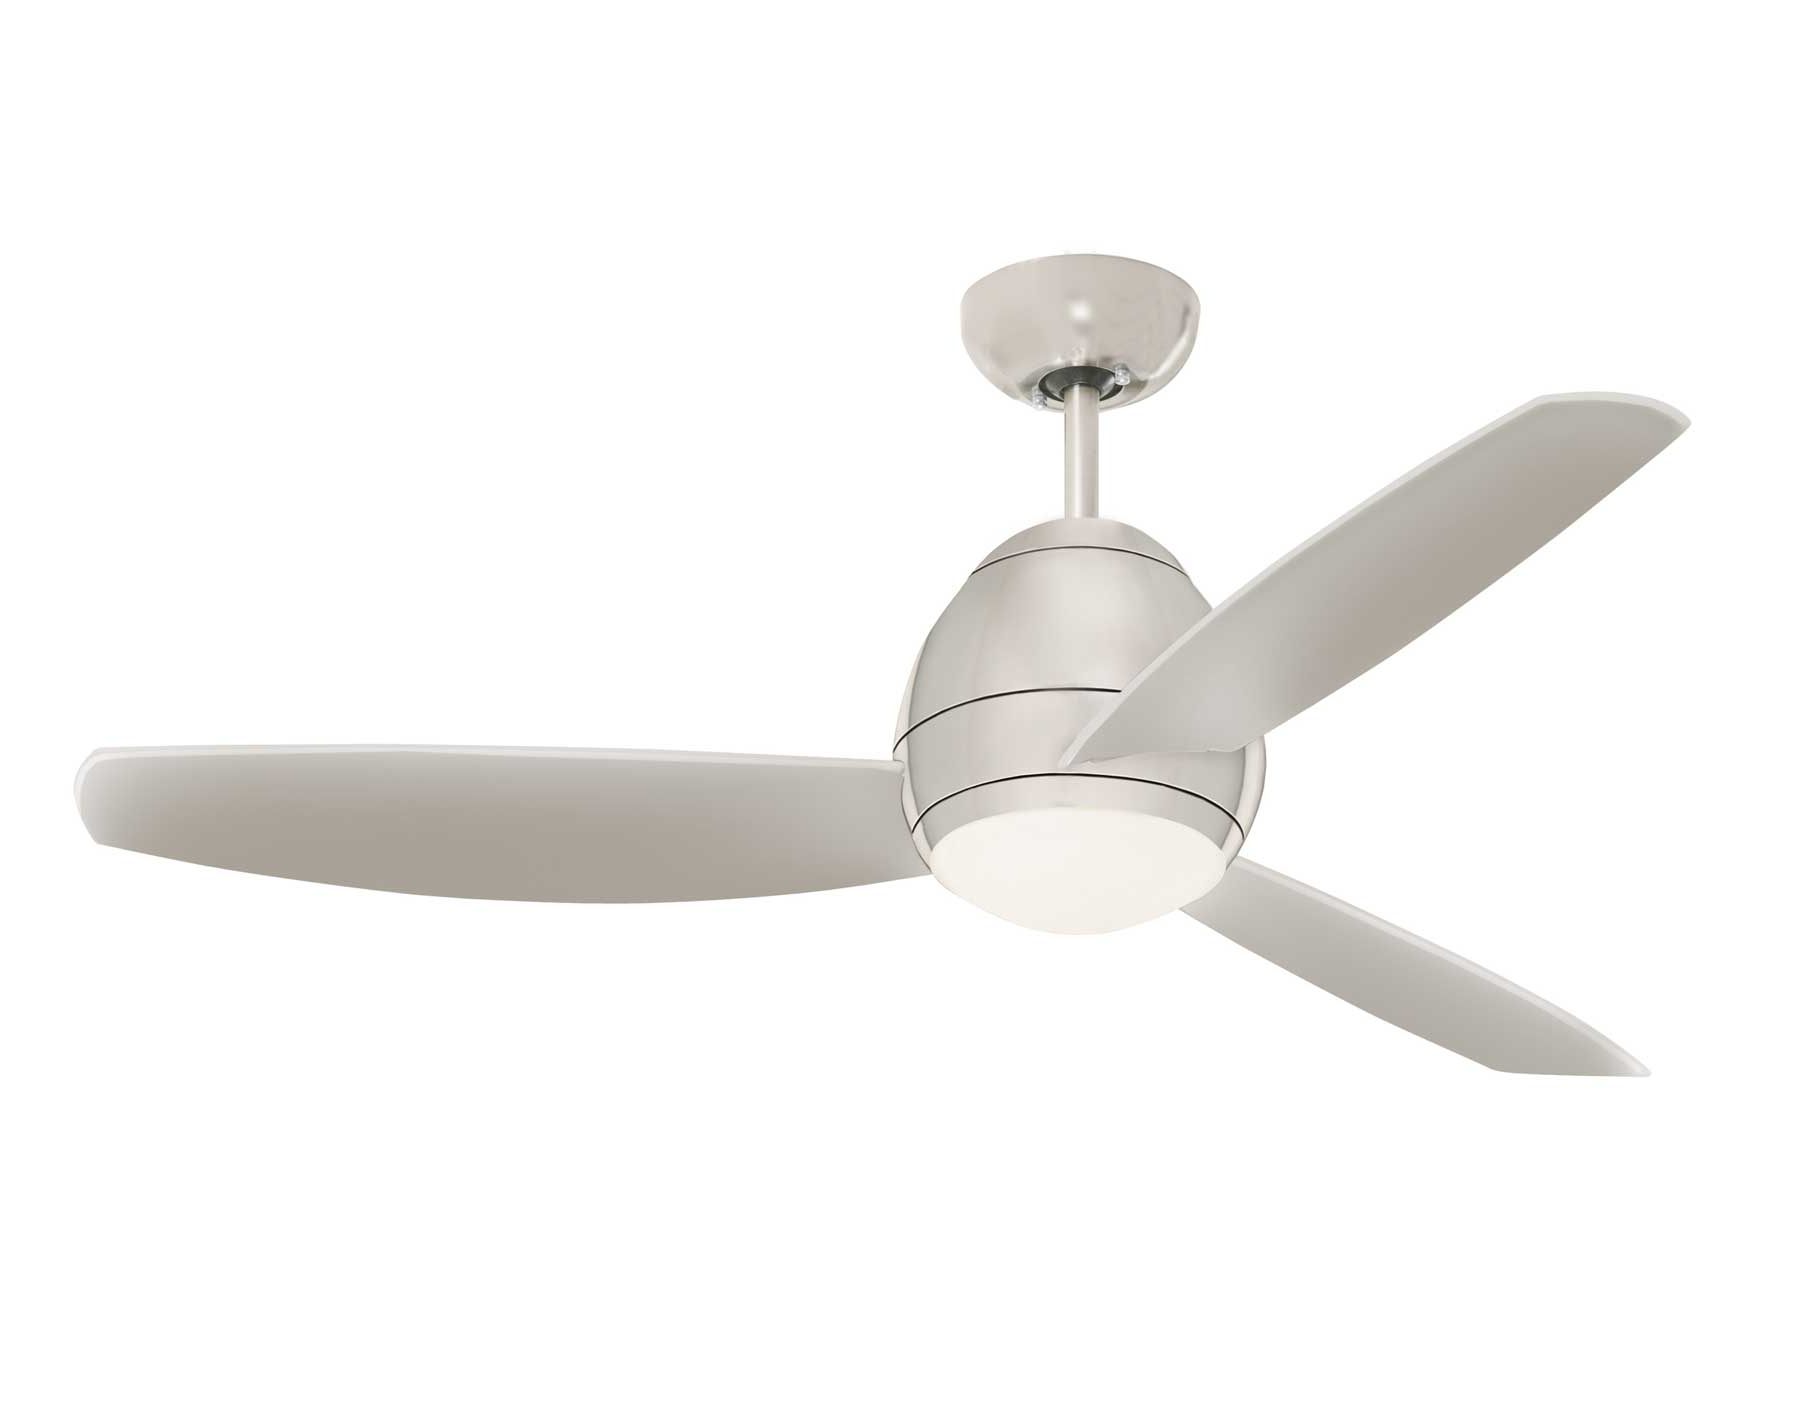 36 Inch Outdoor Ceiling Fans With Light Flush Mount Pertaining To Well Known Ceiling Fan: Remarkable 36 Outdoor Ceiling Fan For Home 36 Inch Fans (View 3 of 20)